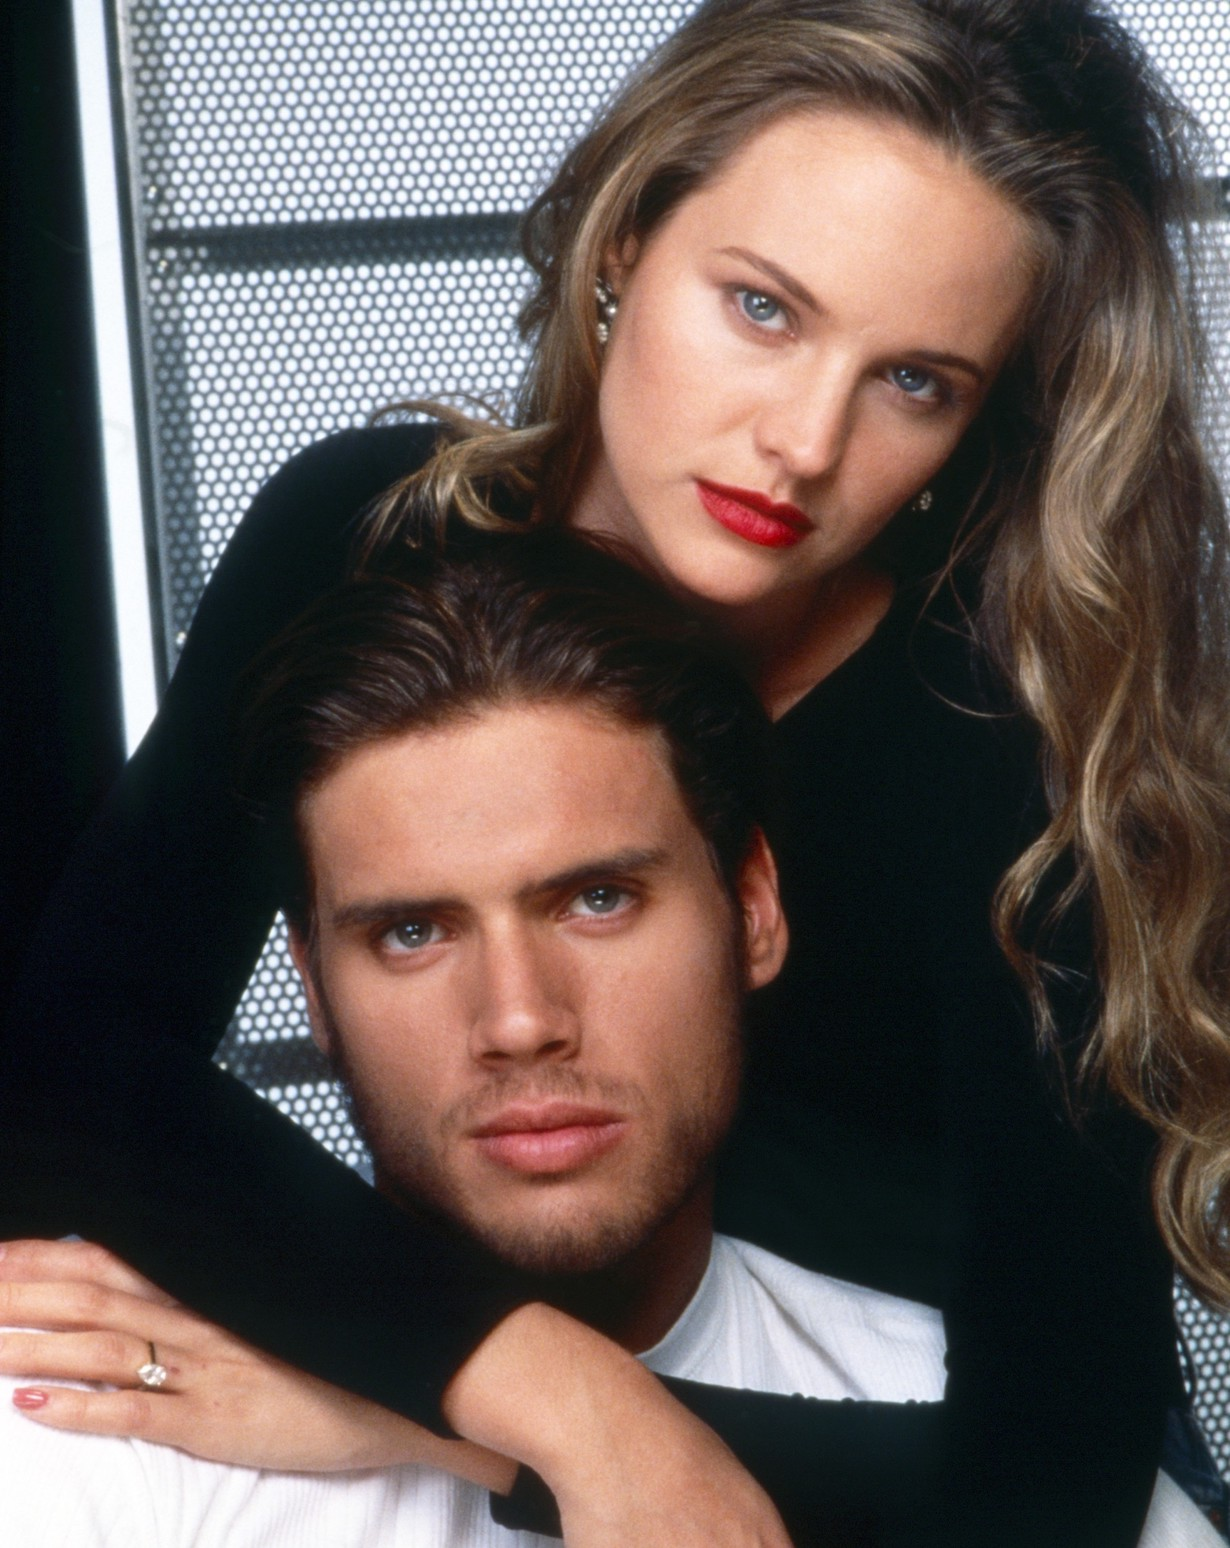 THE YOUNG AND THE RESTLESS, from left: Joshua Morrow, Sharon Case, 1990, 1973-, ph: Cliff Lipson /© CBS /Courtesy Everett Collection